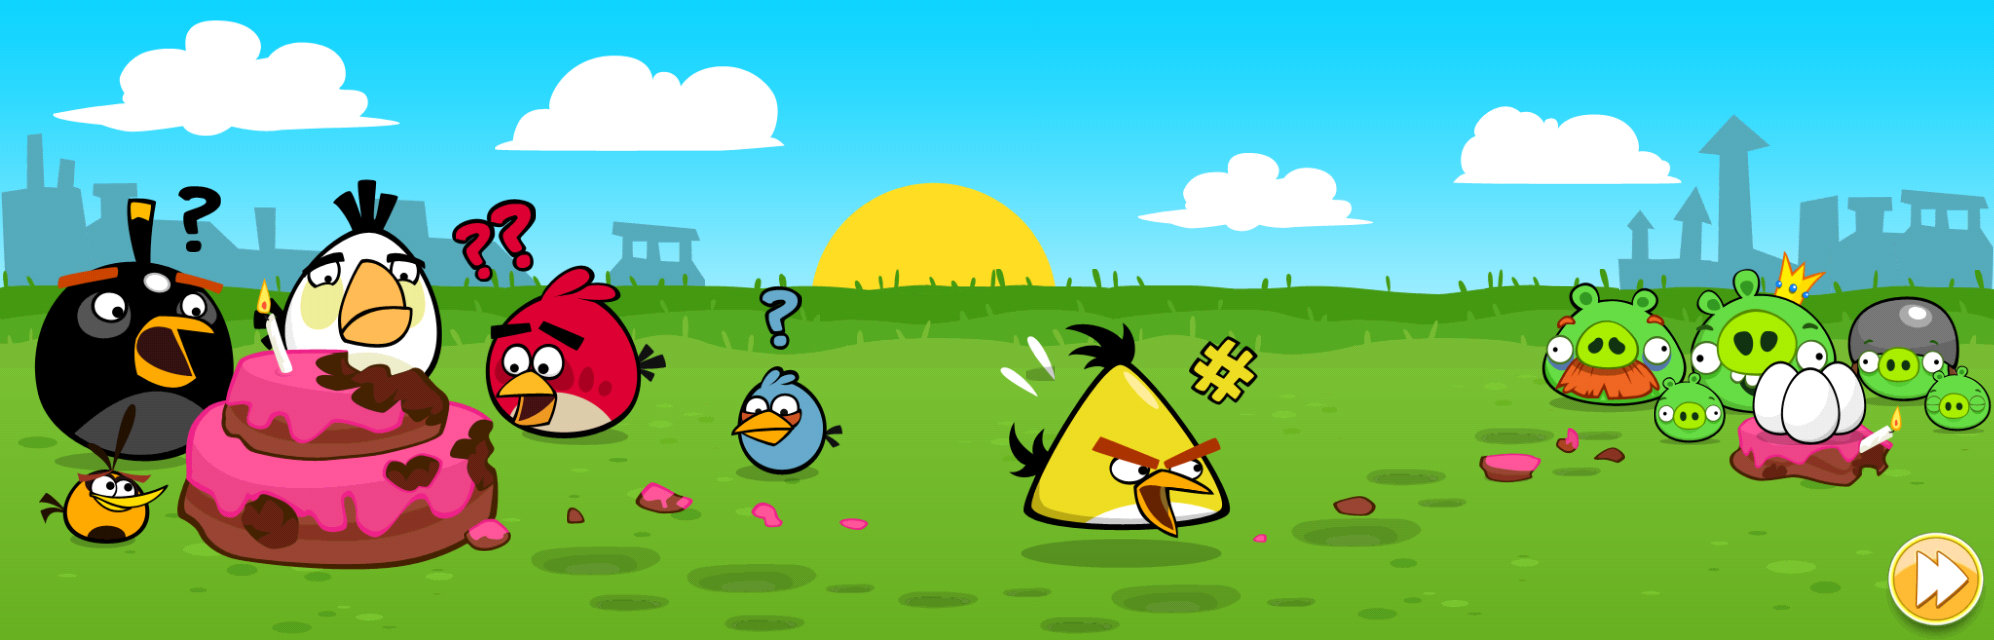 Birdday Party - Angry Birds Wiki